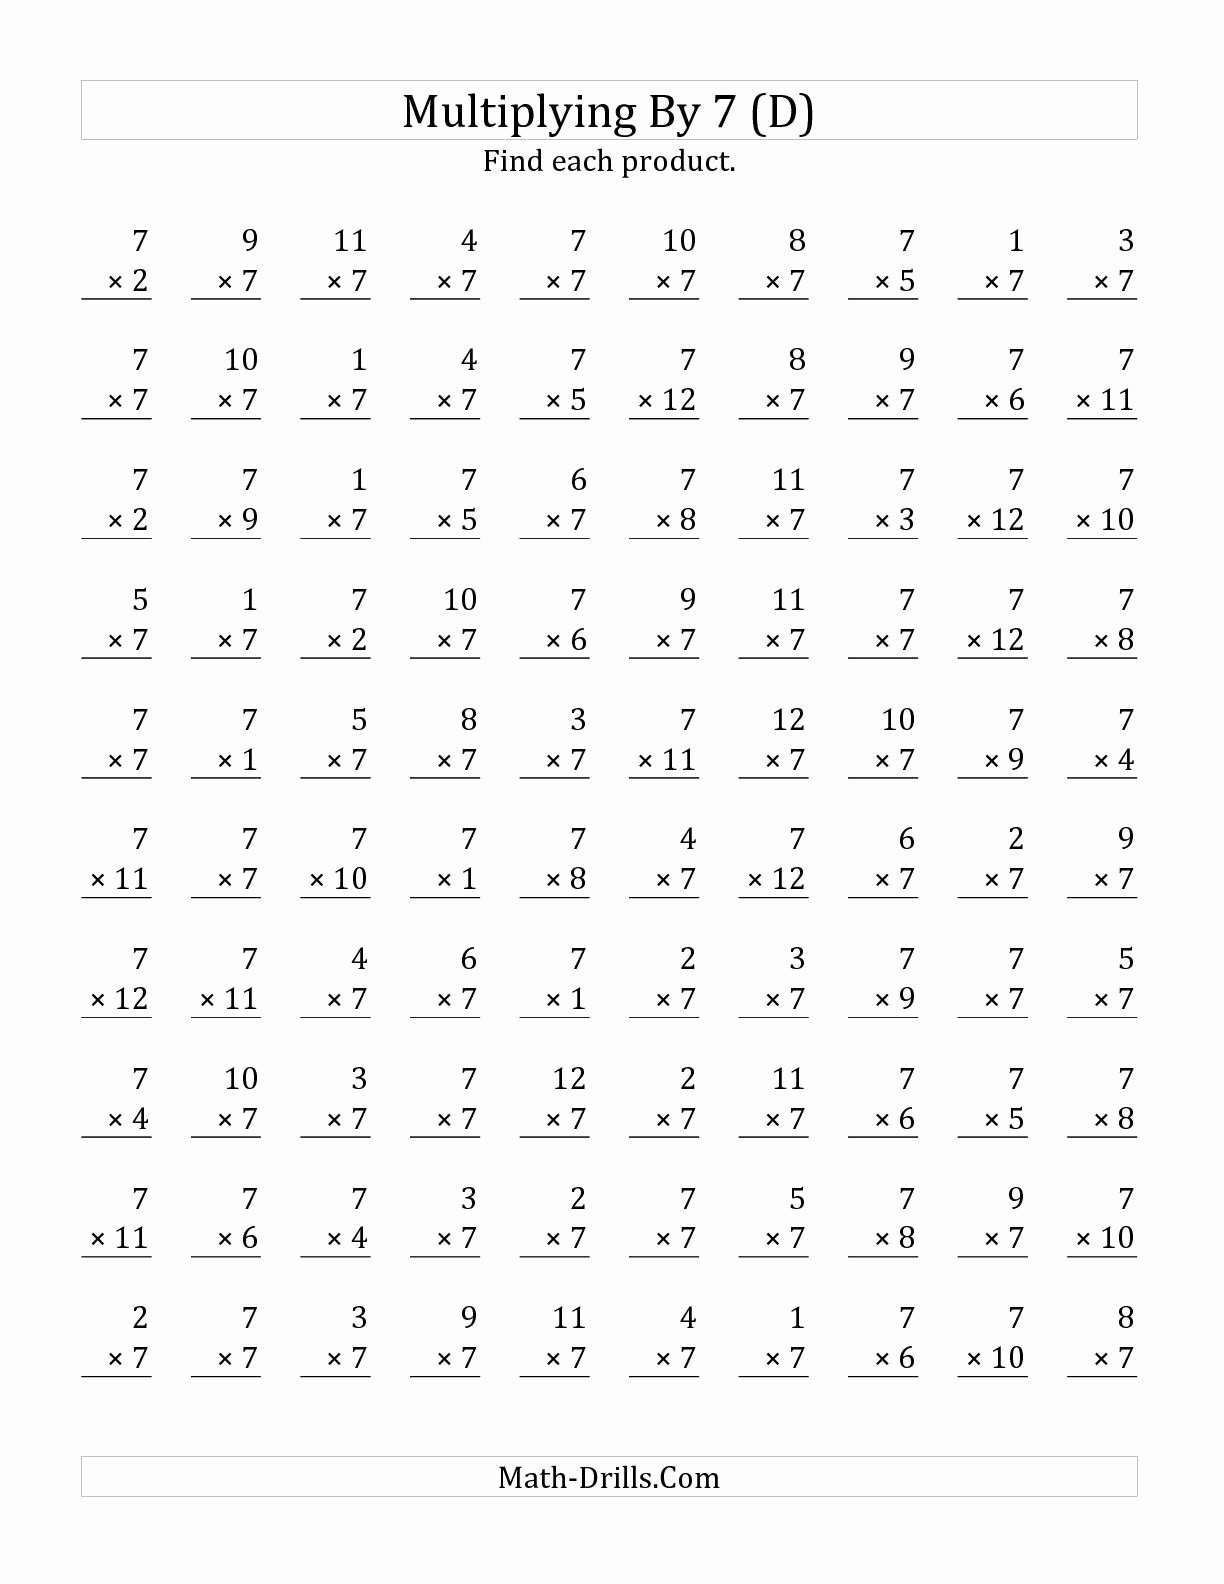 Multiplication Worksheets 7 New the Multiplying 1 to 12 by 7 D Math Worksheet From the Mul